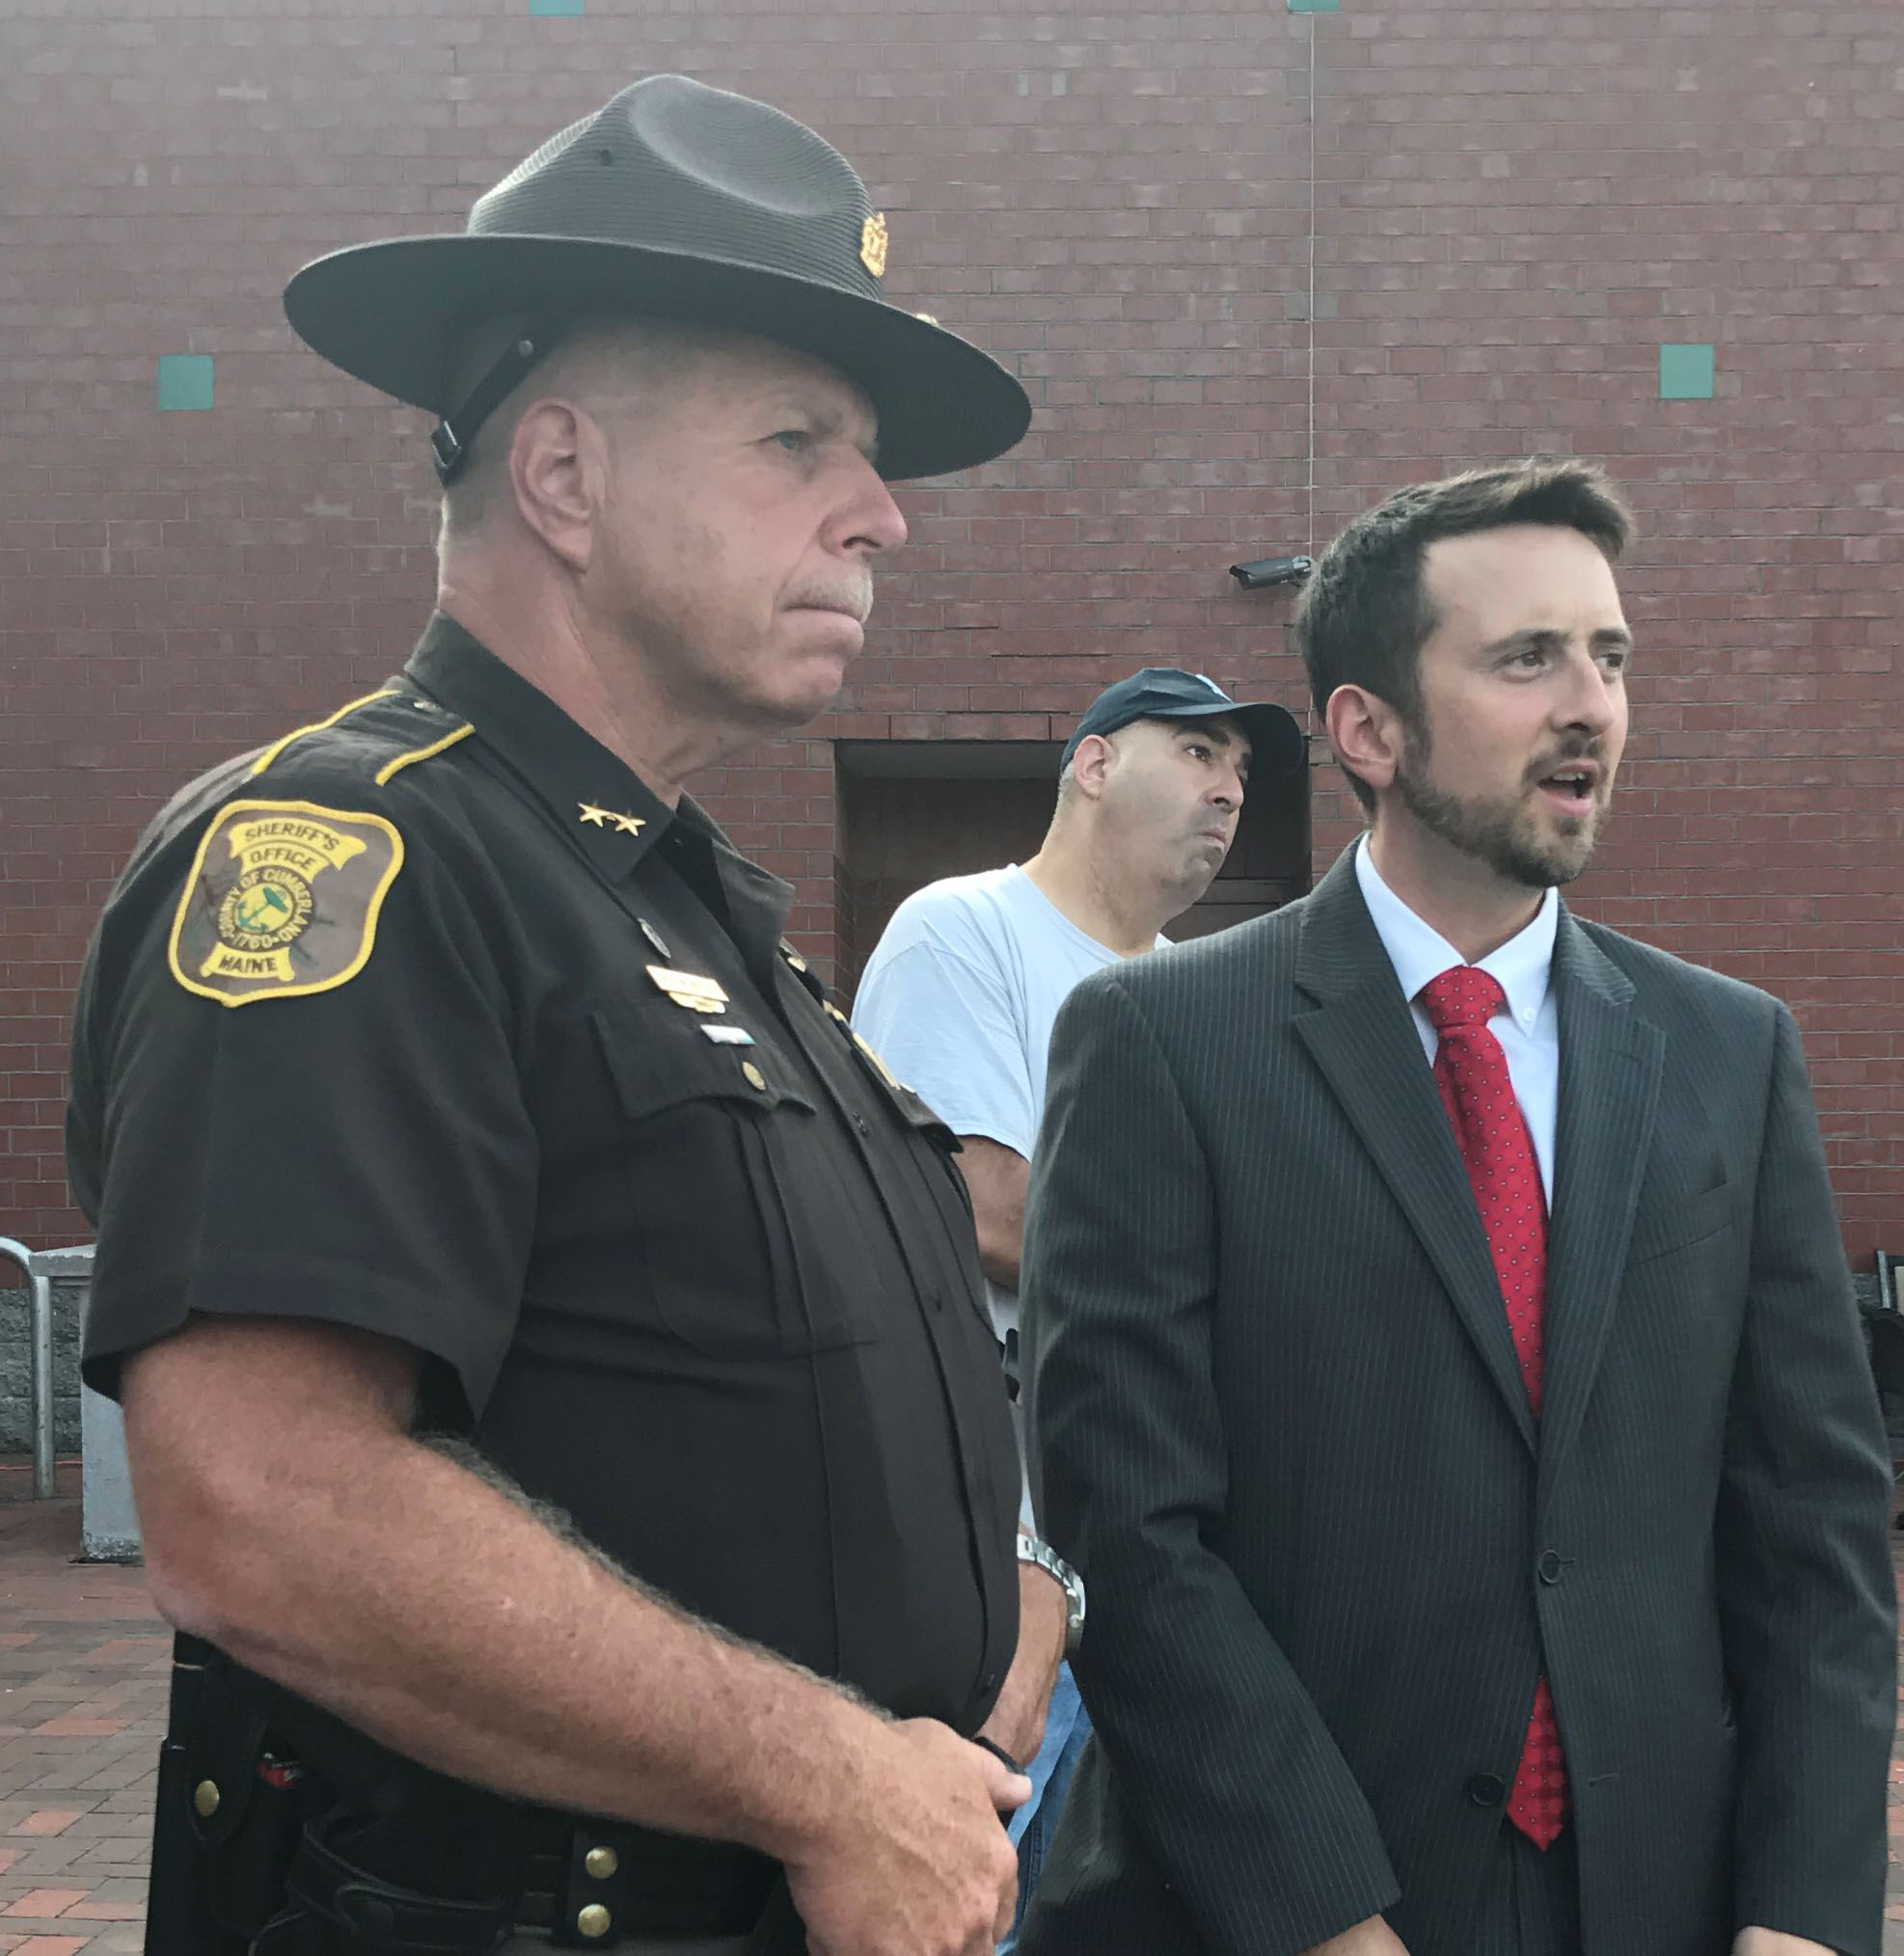 Sheriff and Man in Suit